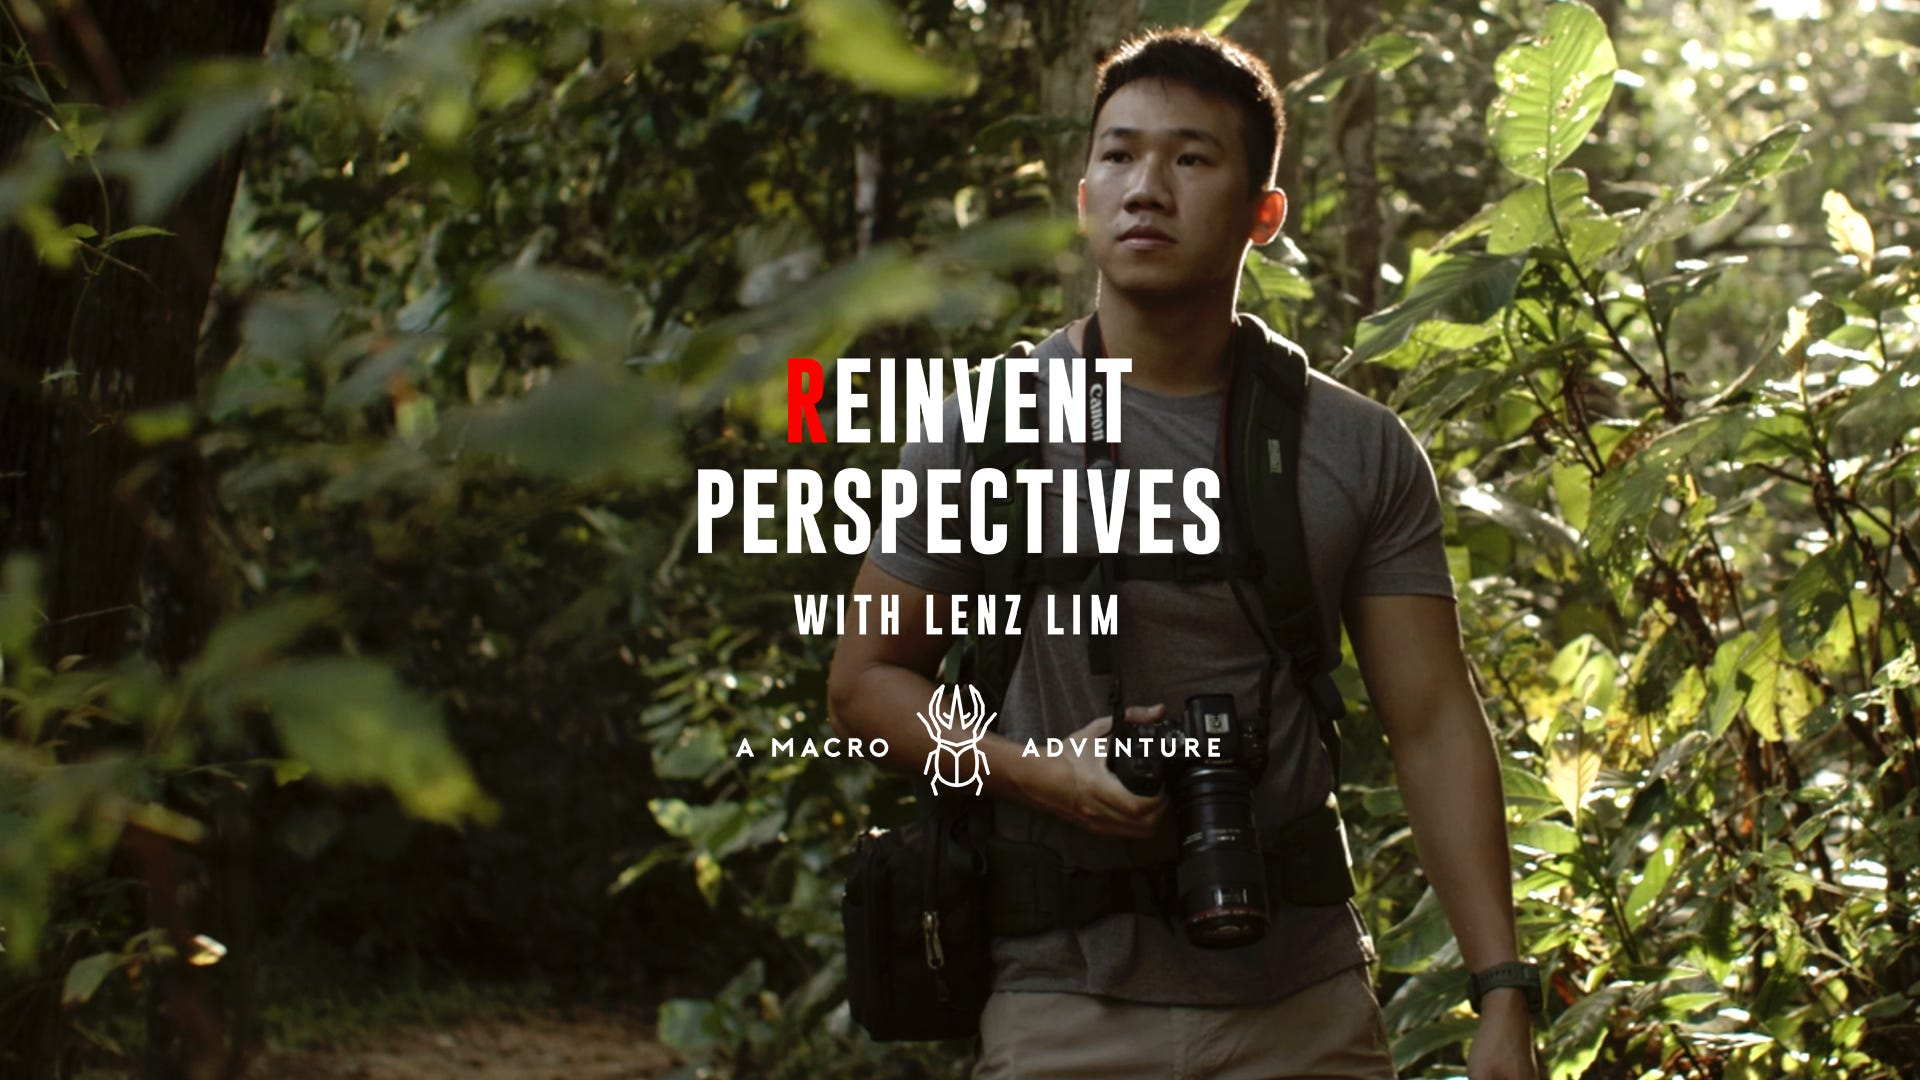 Macro Photographer Lenz Lim in Reinvent Perspectives